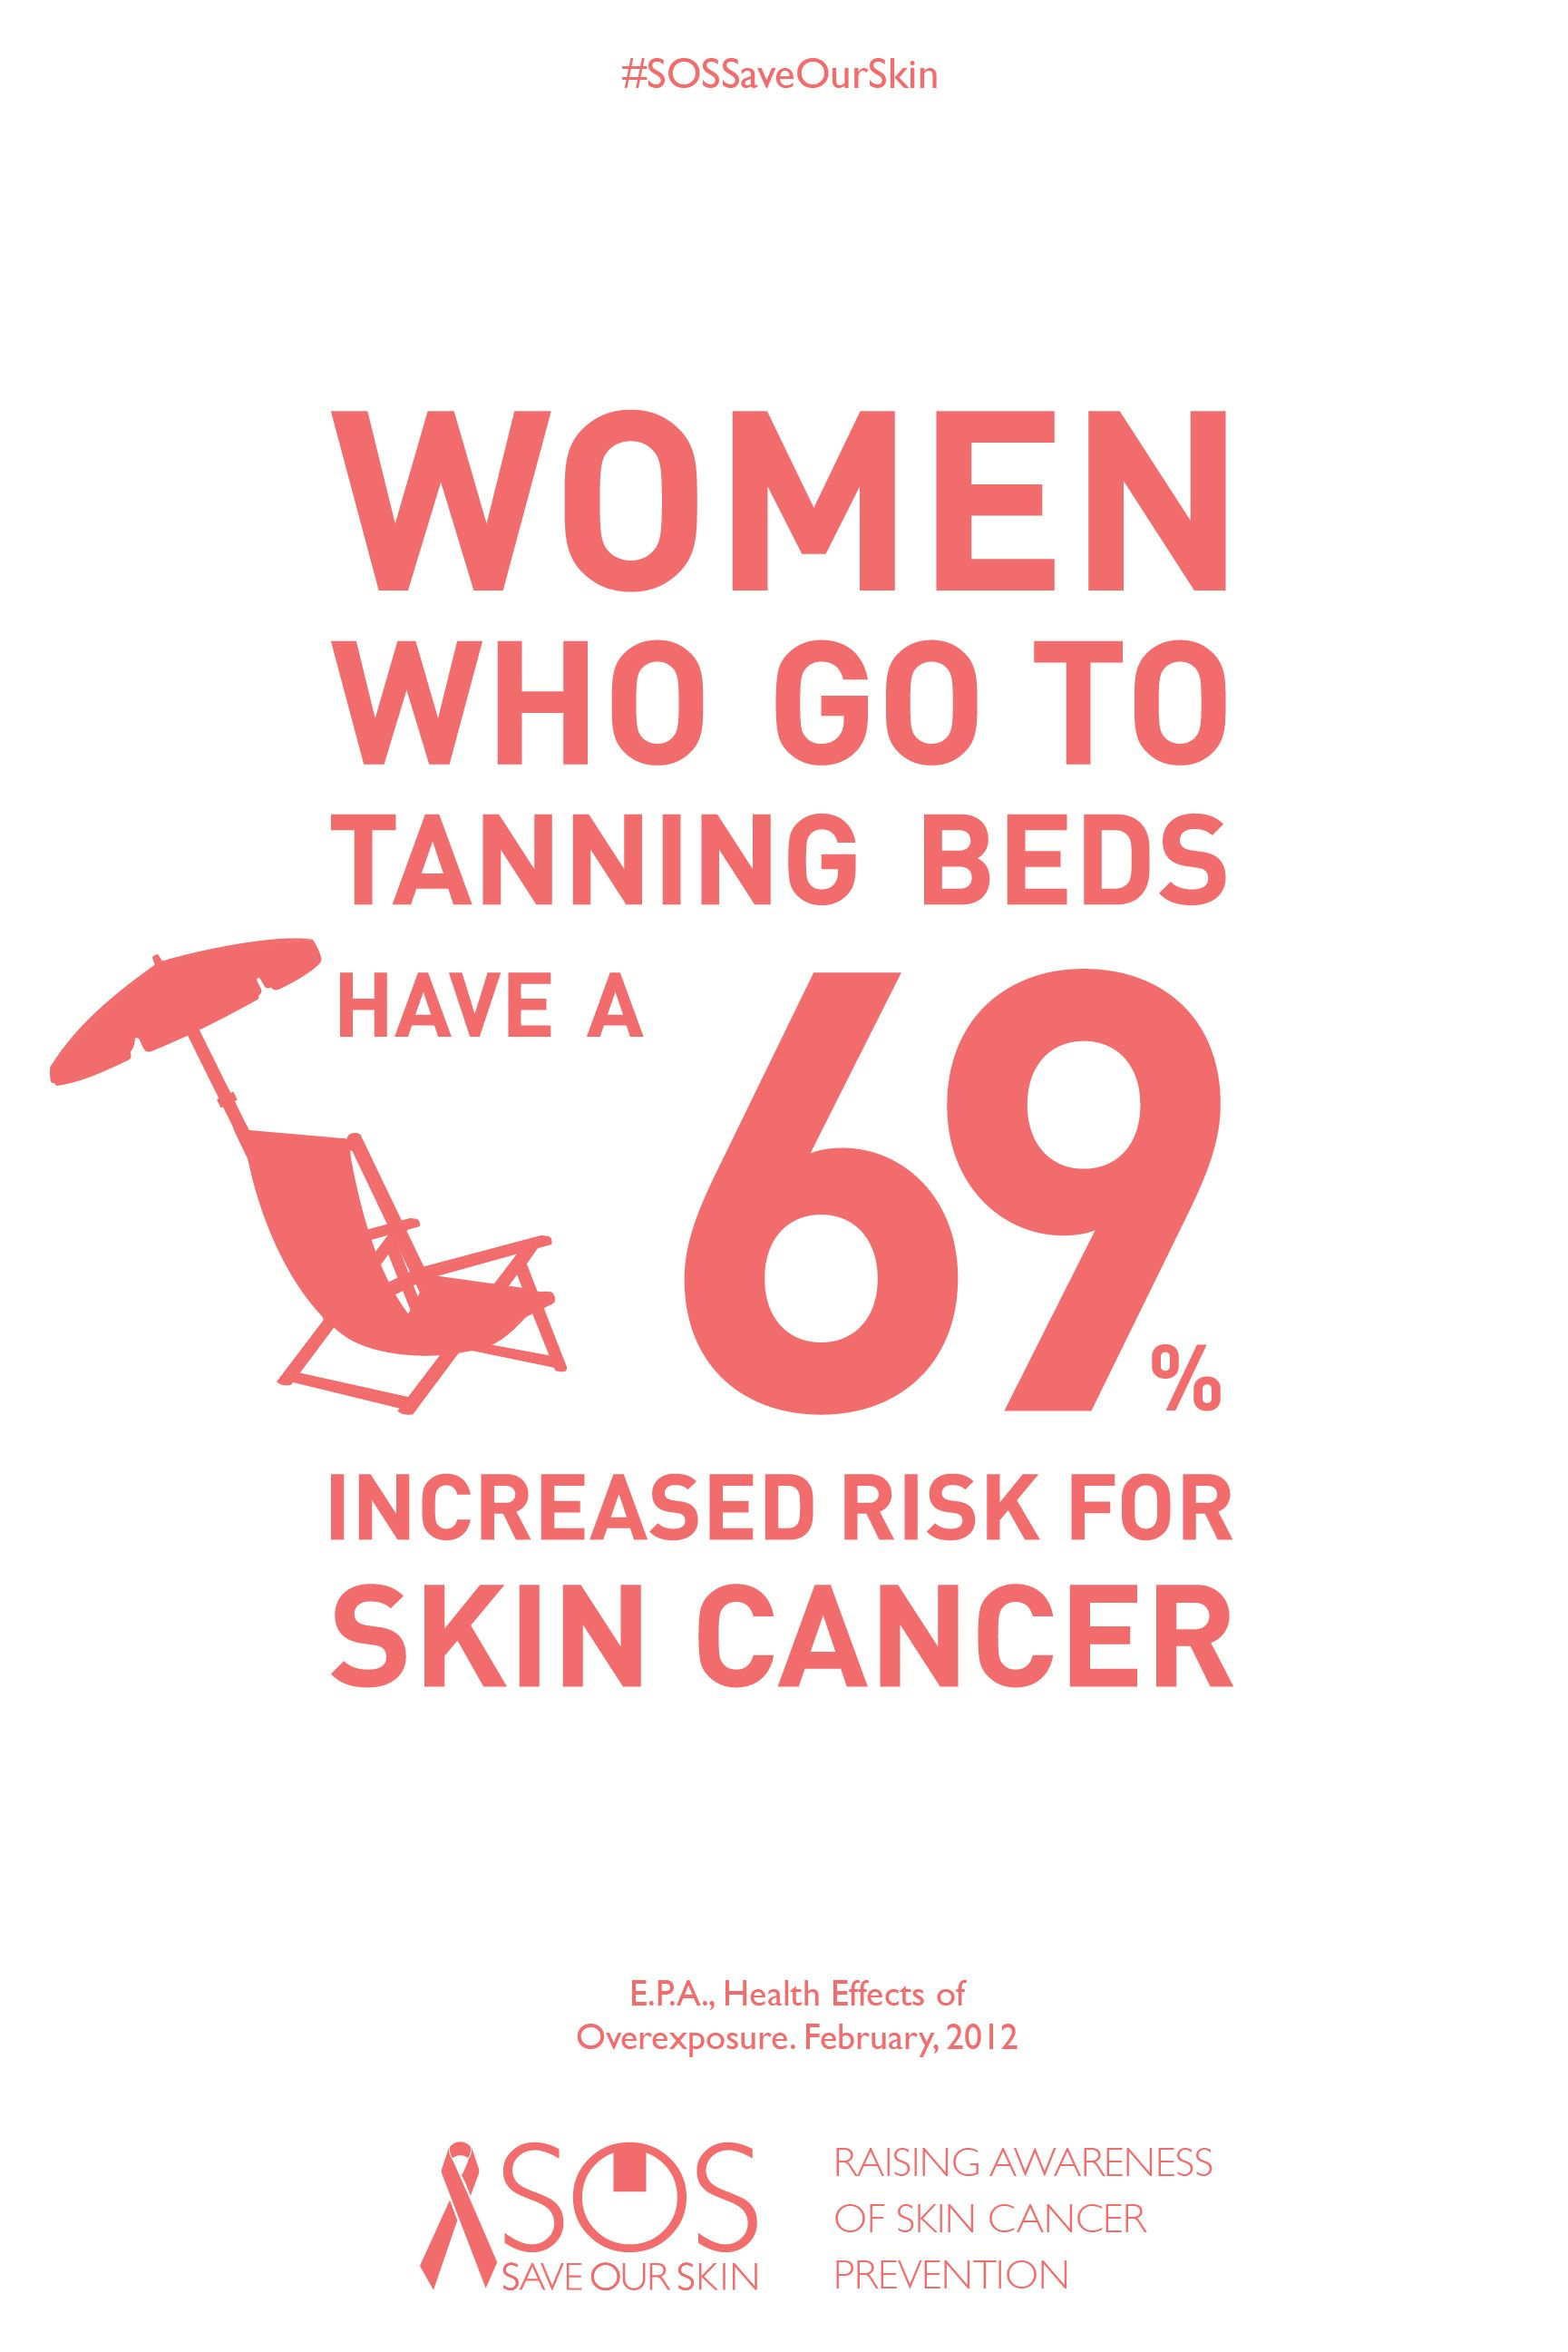 tanning and skin cancer essay Sevierville woman warns other about dangers of tanning, skin cancer posted on june 19, 2018 it's amazing how something so small can so drastically change a life.